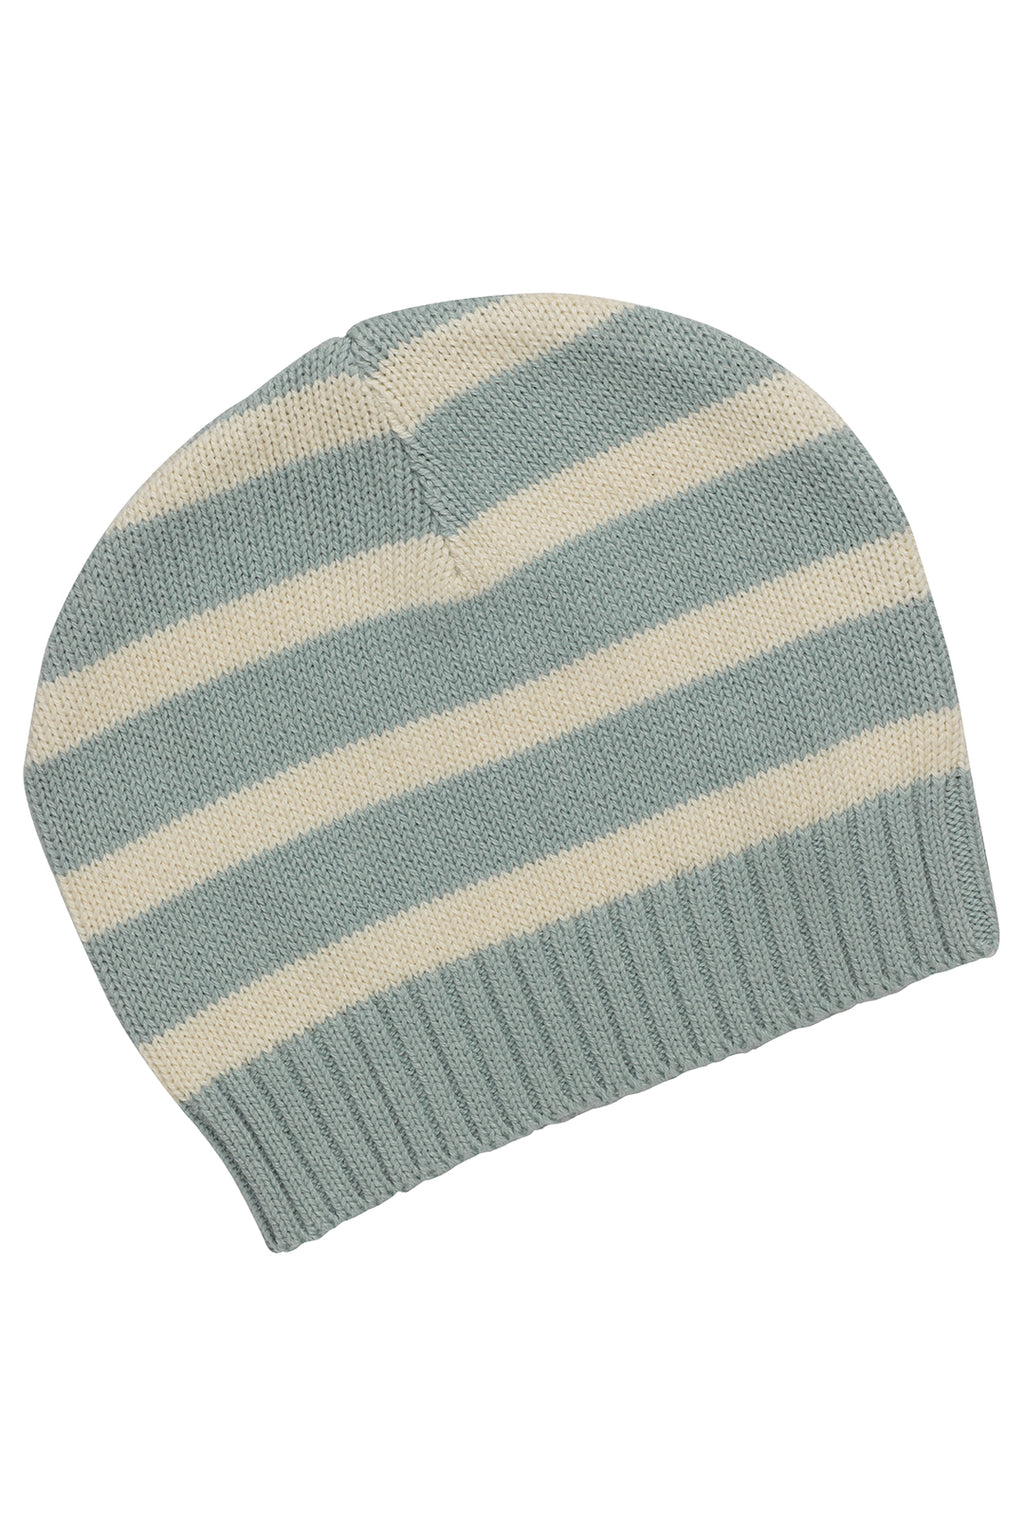 Stripes Ether Blue Knitted Beanie